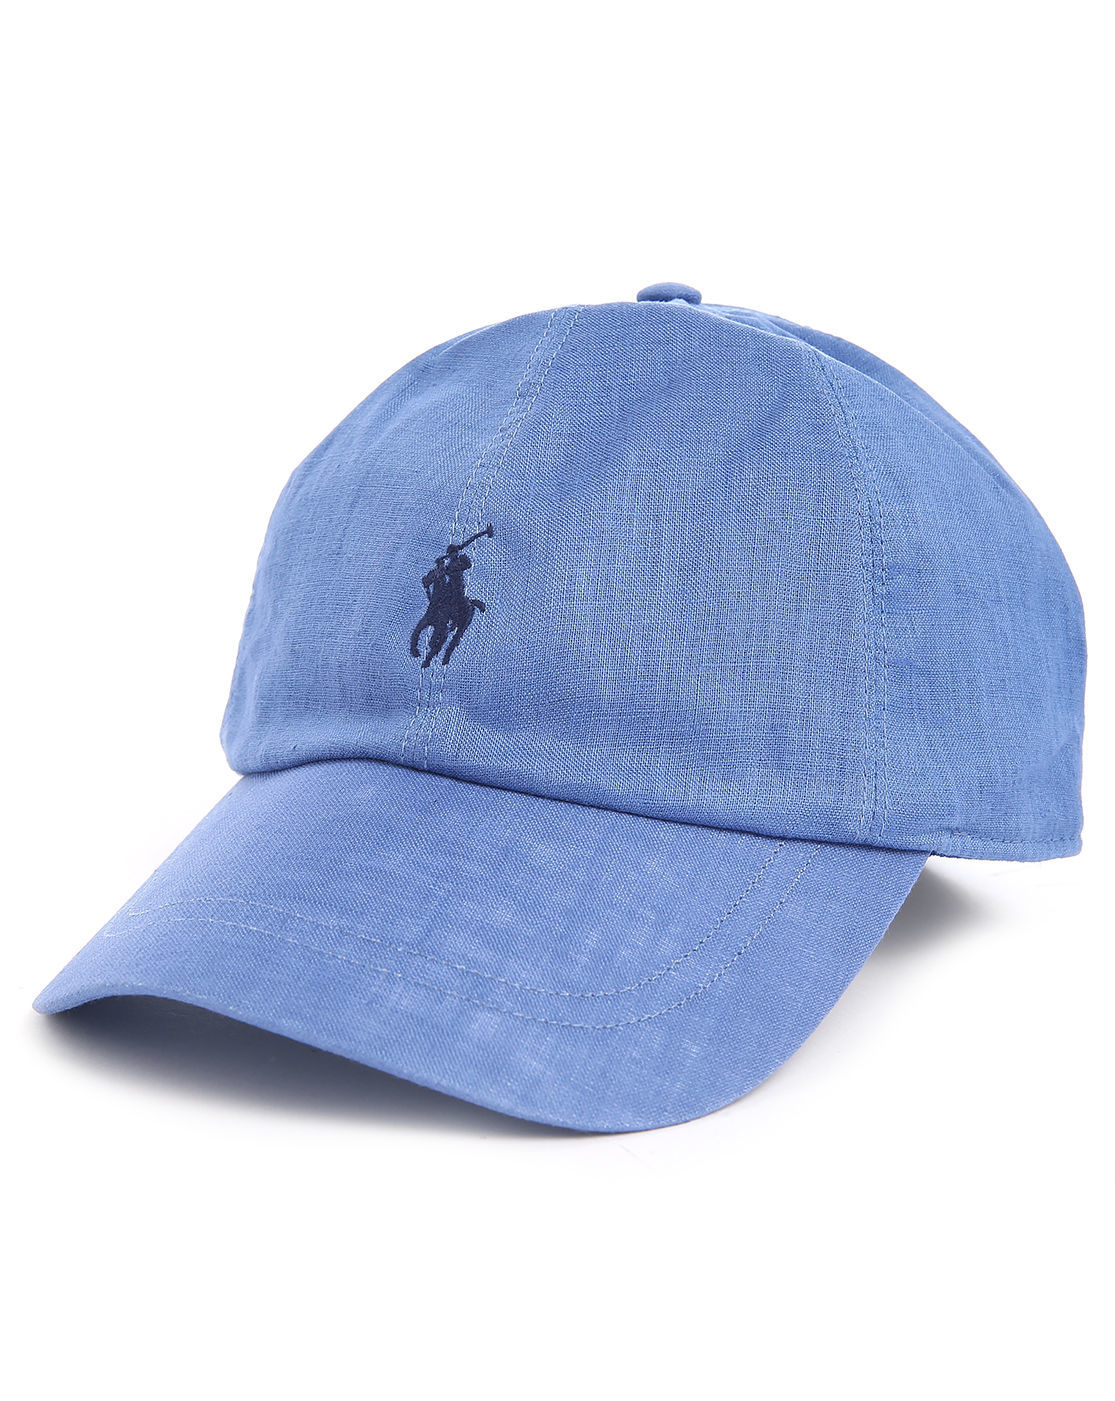 polo ralph lauren blue elasticated linen cap in blue for. Black Bedroom Furniture Sets. Home Design Ideas